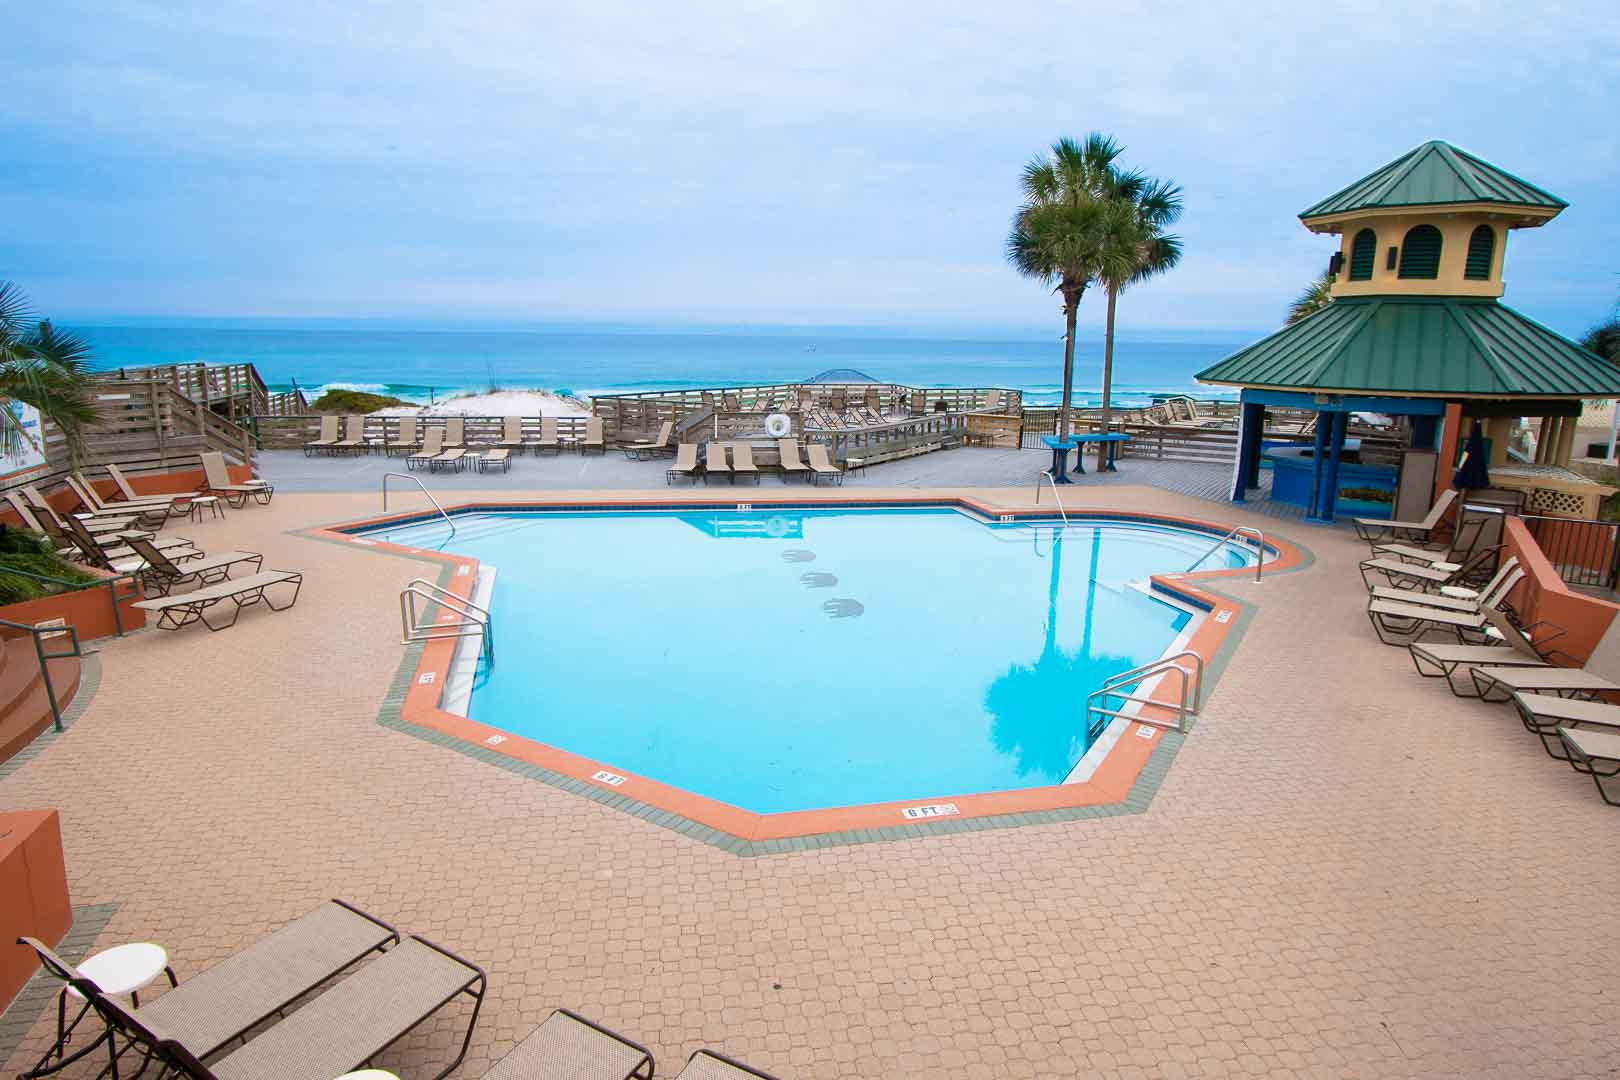 A spacious outdoor swimming pool with an ocean view at VRI's Bay Club of Sandestin in Florida.